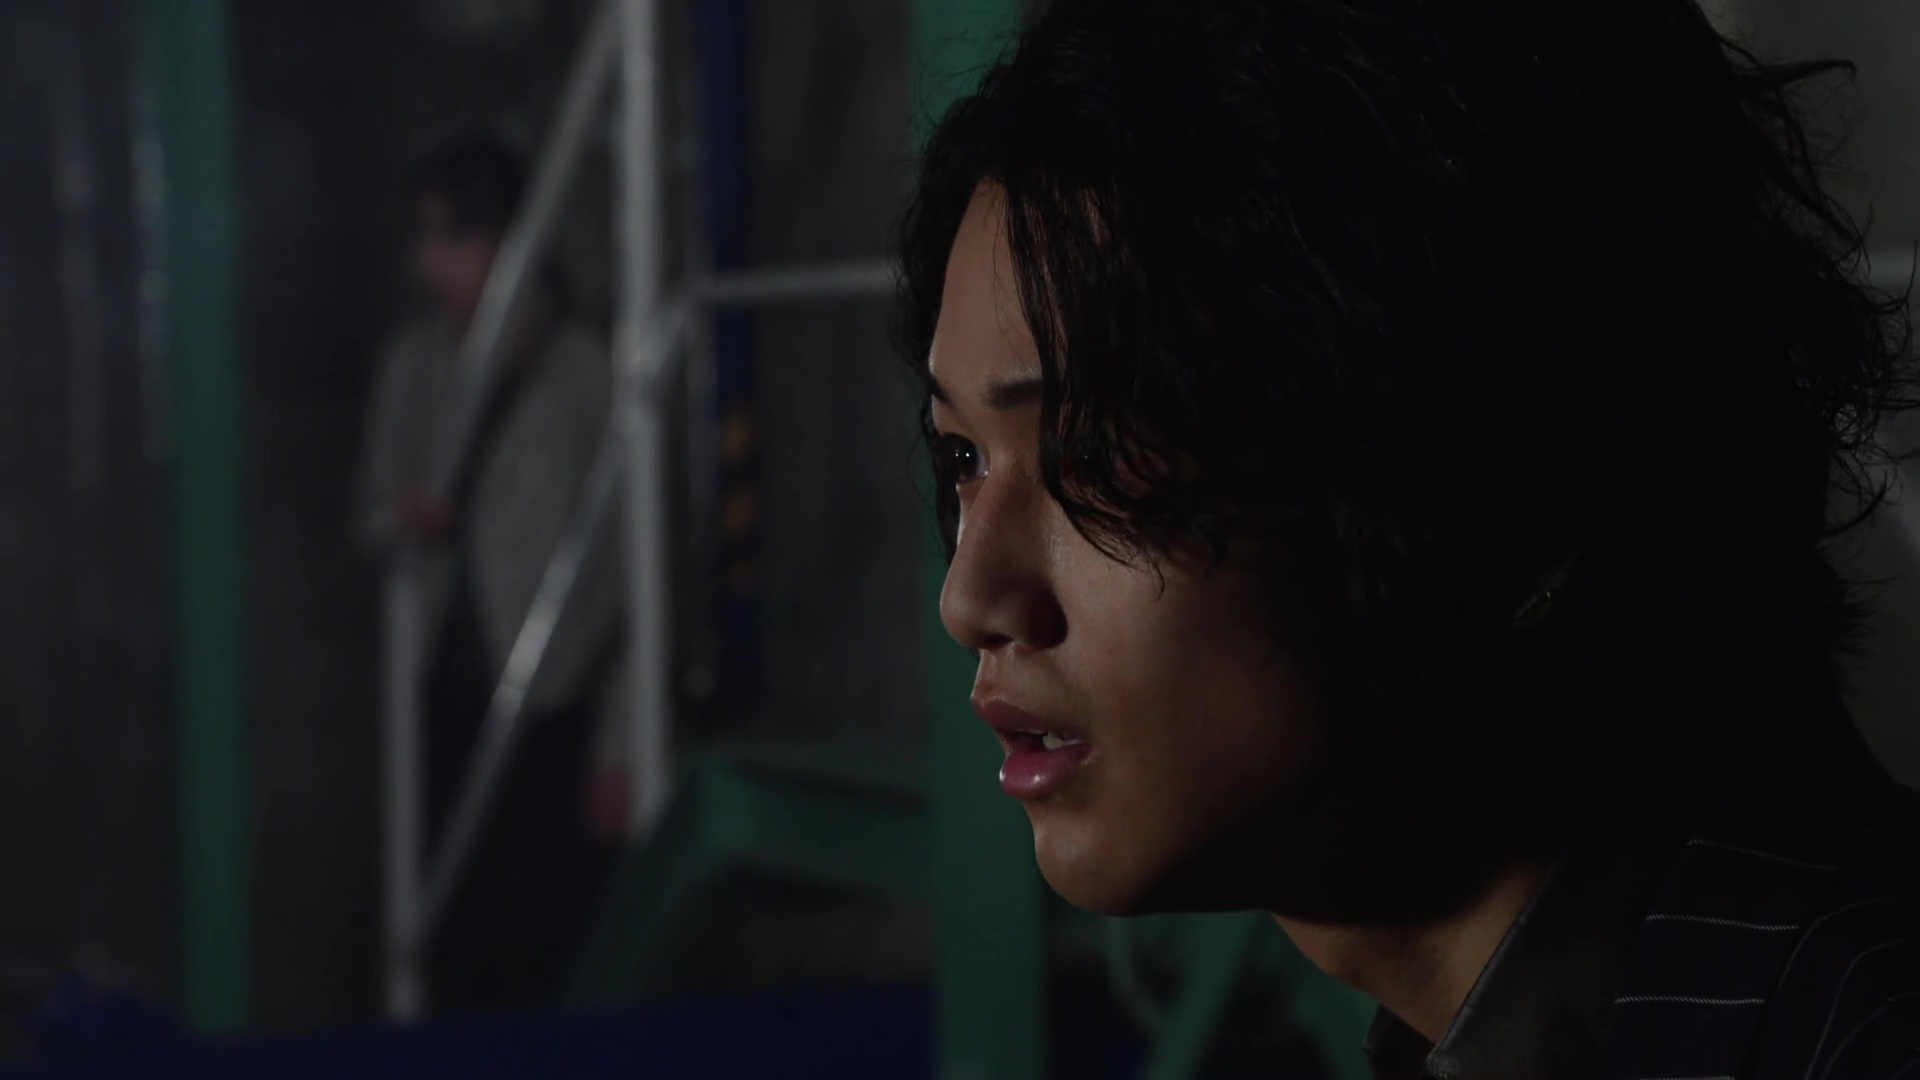 Kamen Rider Zero One Episode 36 Recap